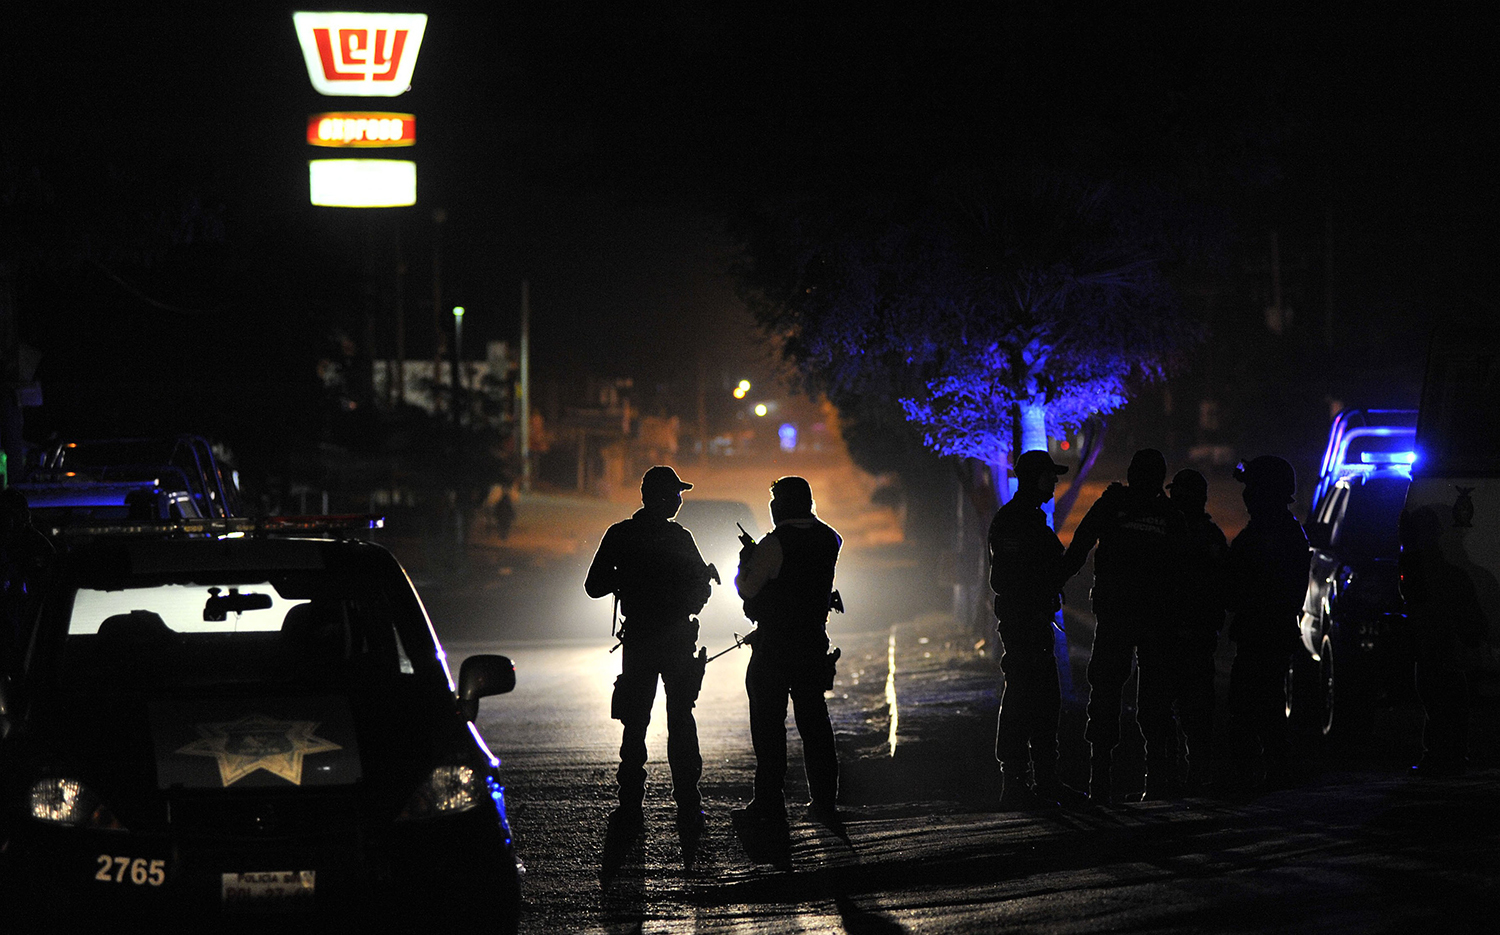 TOPSHOT - Members of the Mexican Army and Federal police patrol a crime scene after an origanized crime shooting at the Villa Juarez neighbourhood in Navolato, State of Sinaloa on February 7, 2017. / AFP PHOTO / FERNANDO BRITO / TT / kod 444